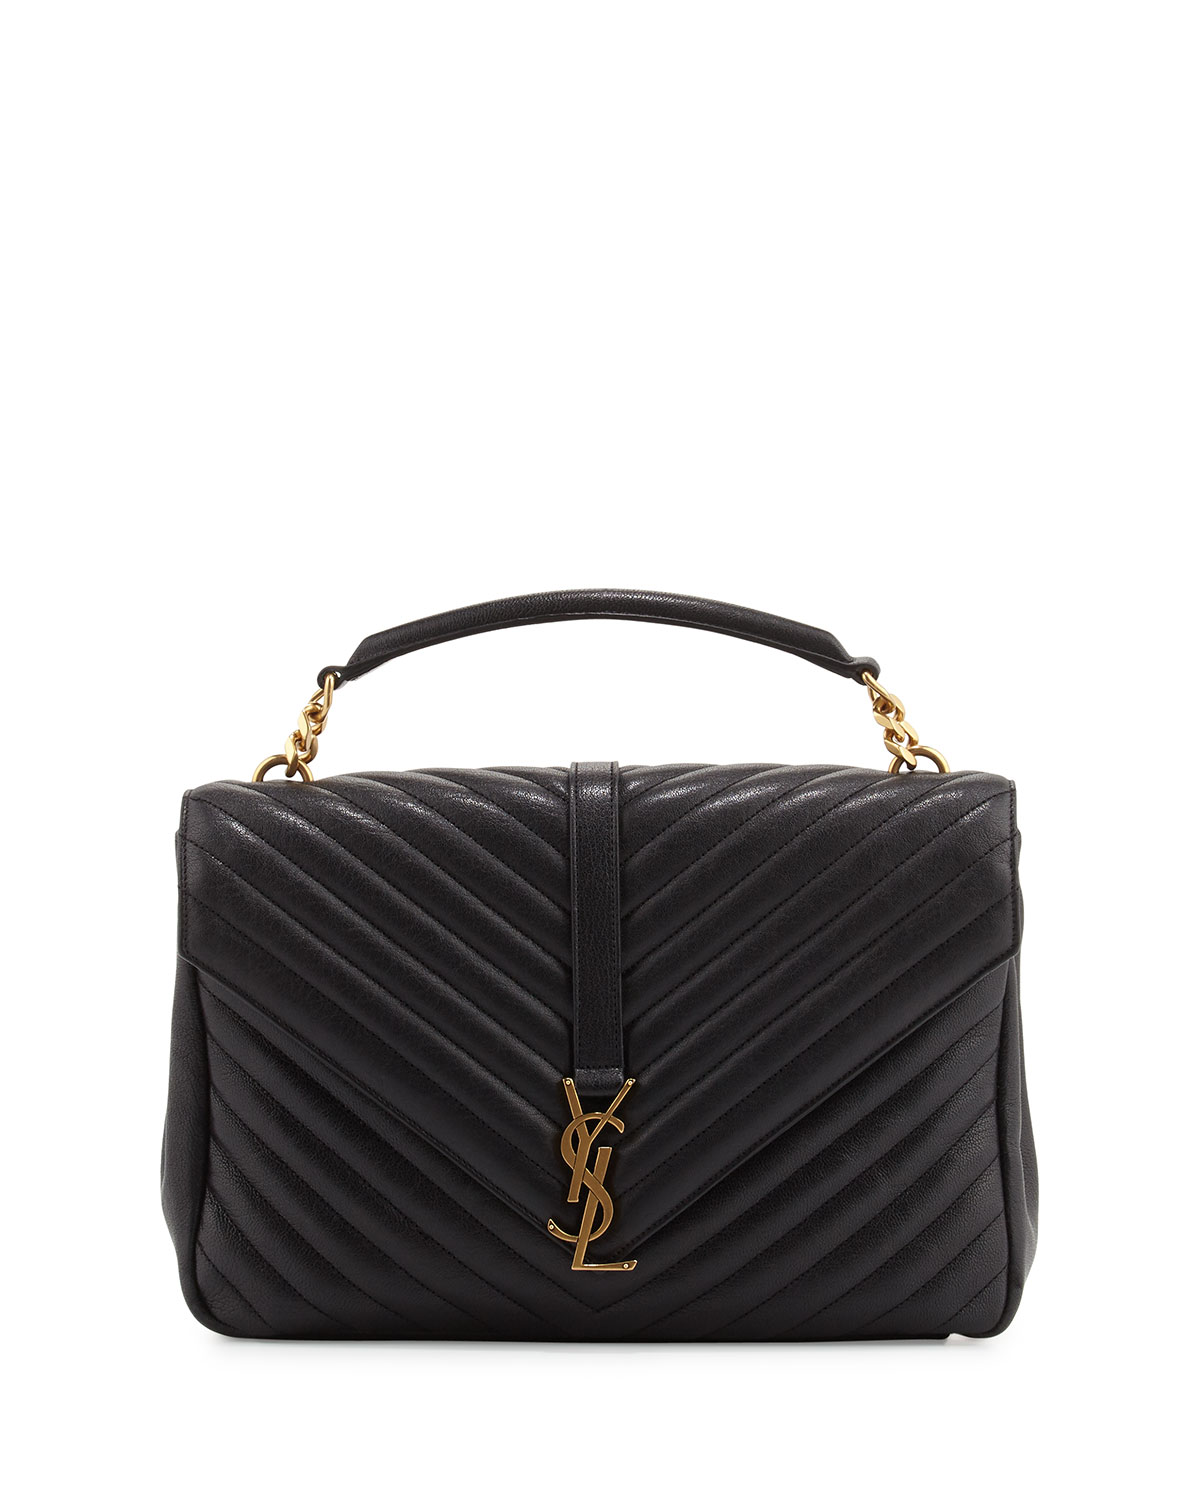 23c214161bd7 Saint Laurent Monogram YSL College Large Chain Shoulder Bag